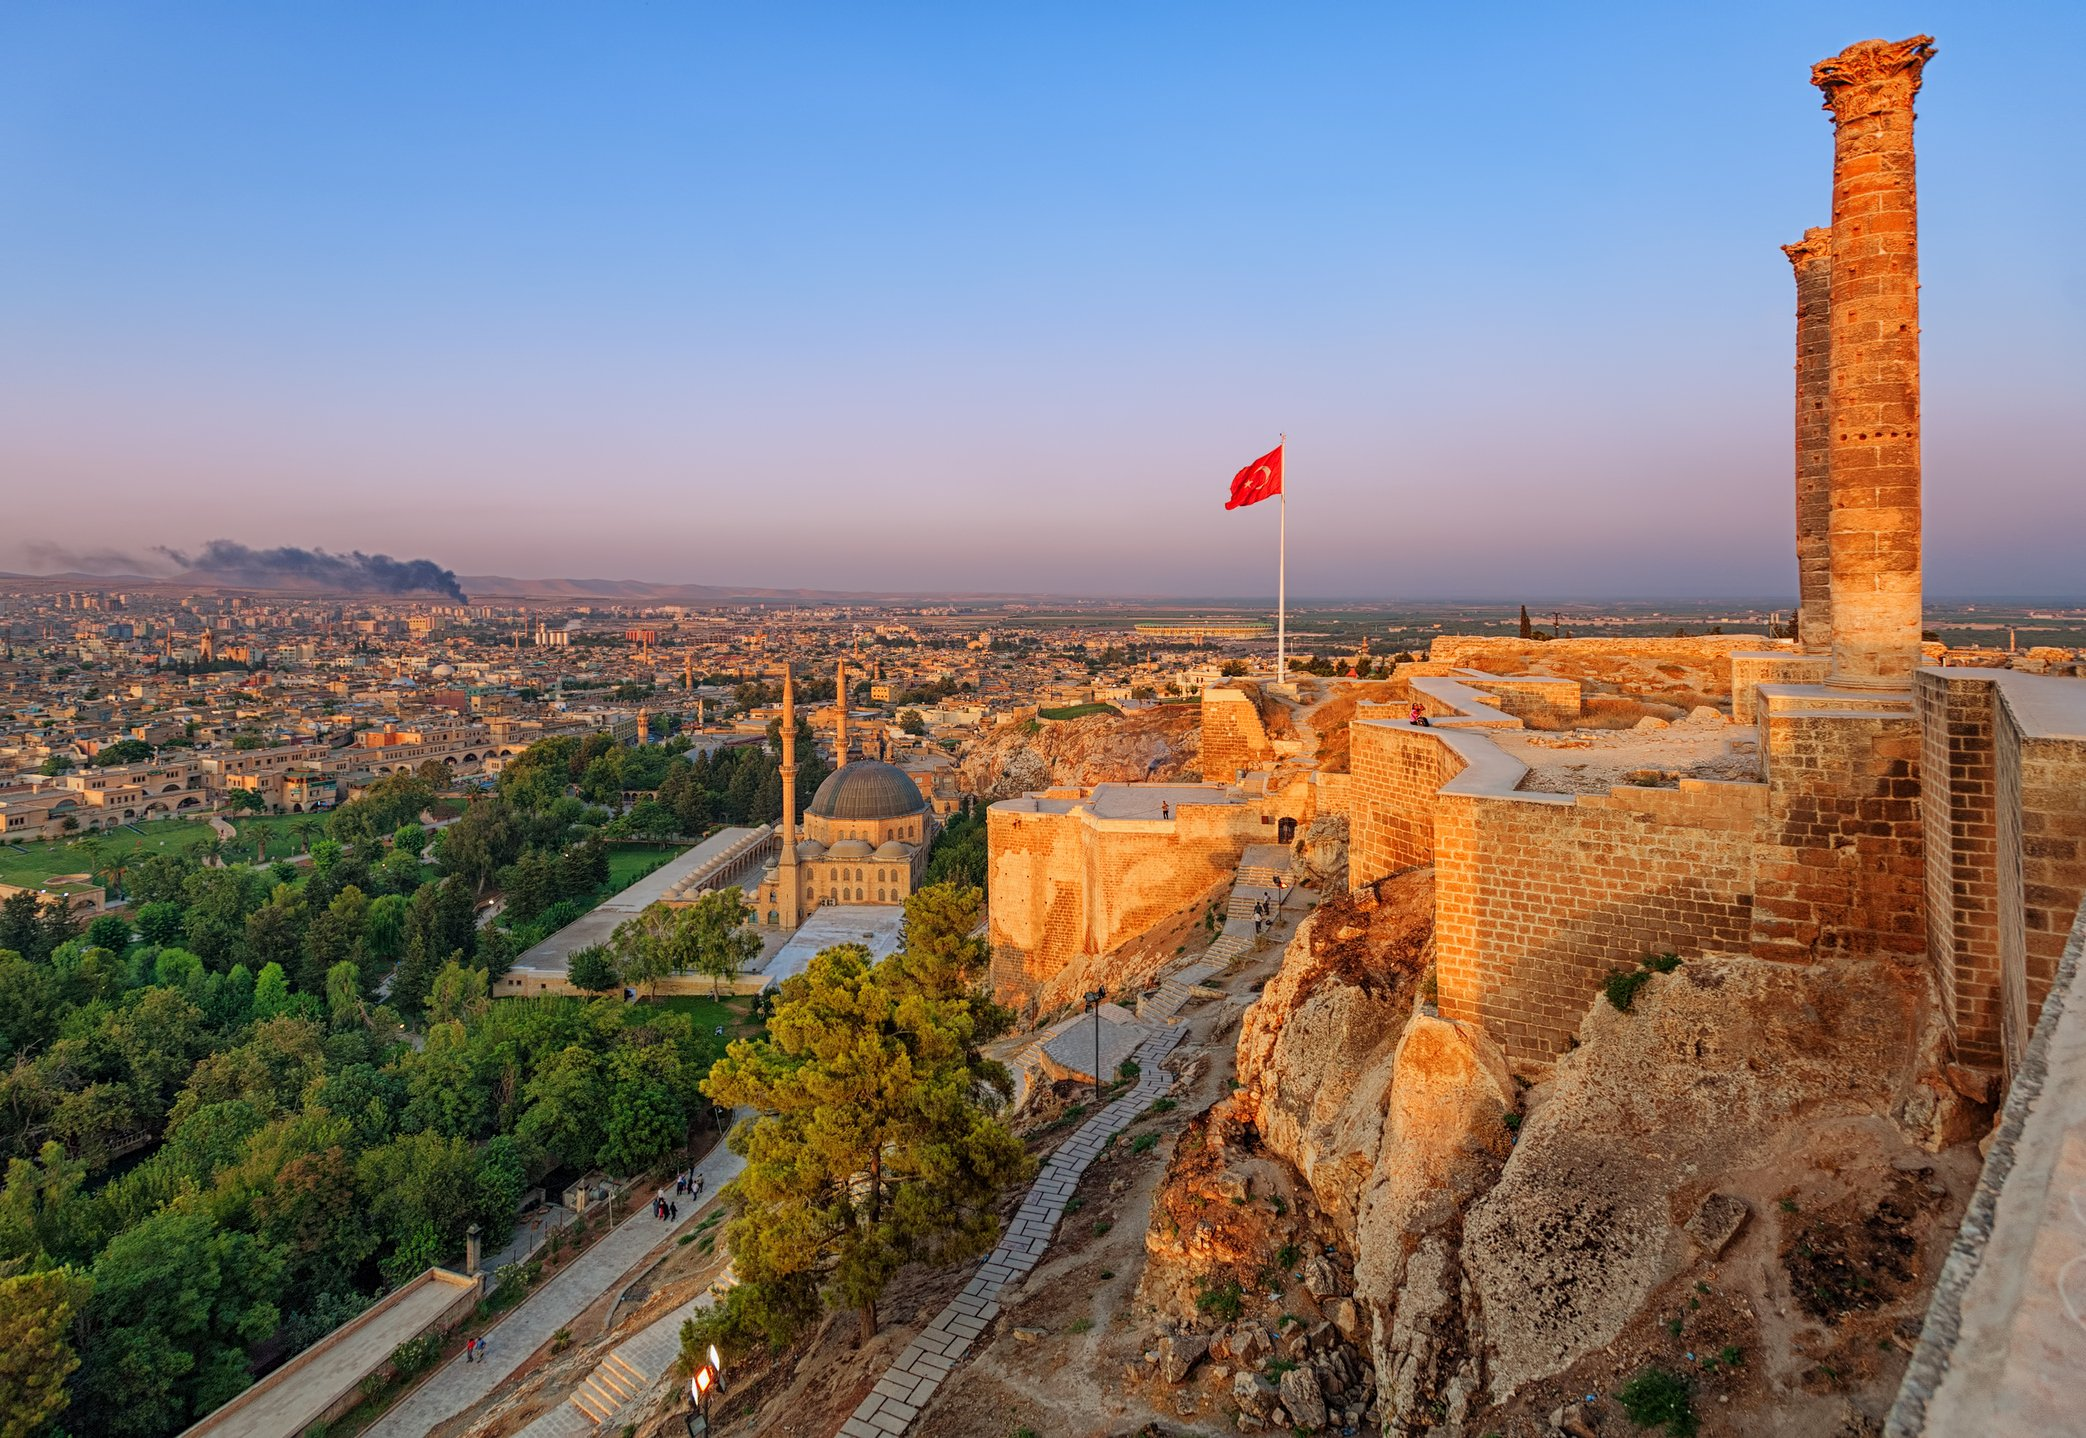 The Castle of Urfa serves as the city's balcony, giving visitors a whole view of the city under their feet. (iStock Photo)